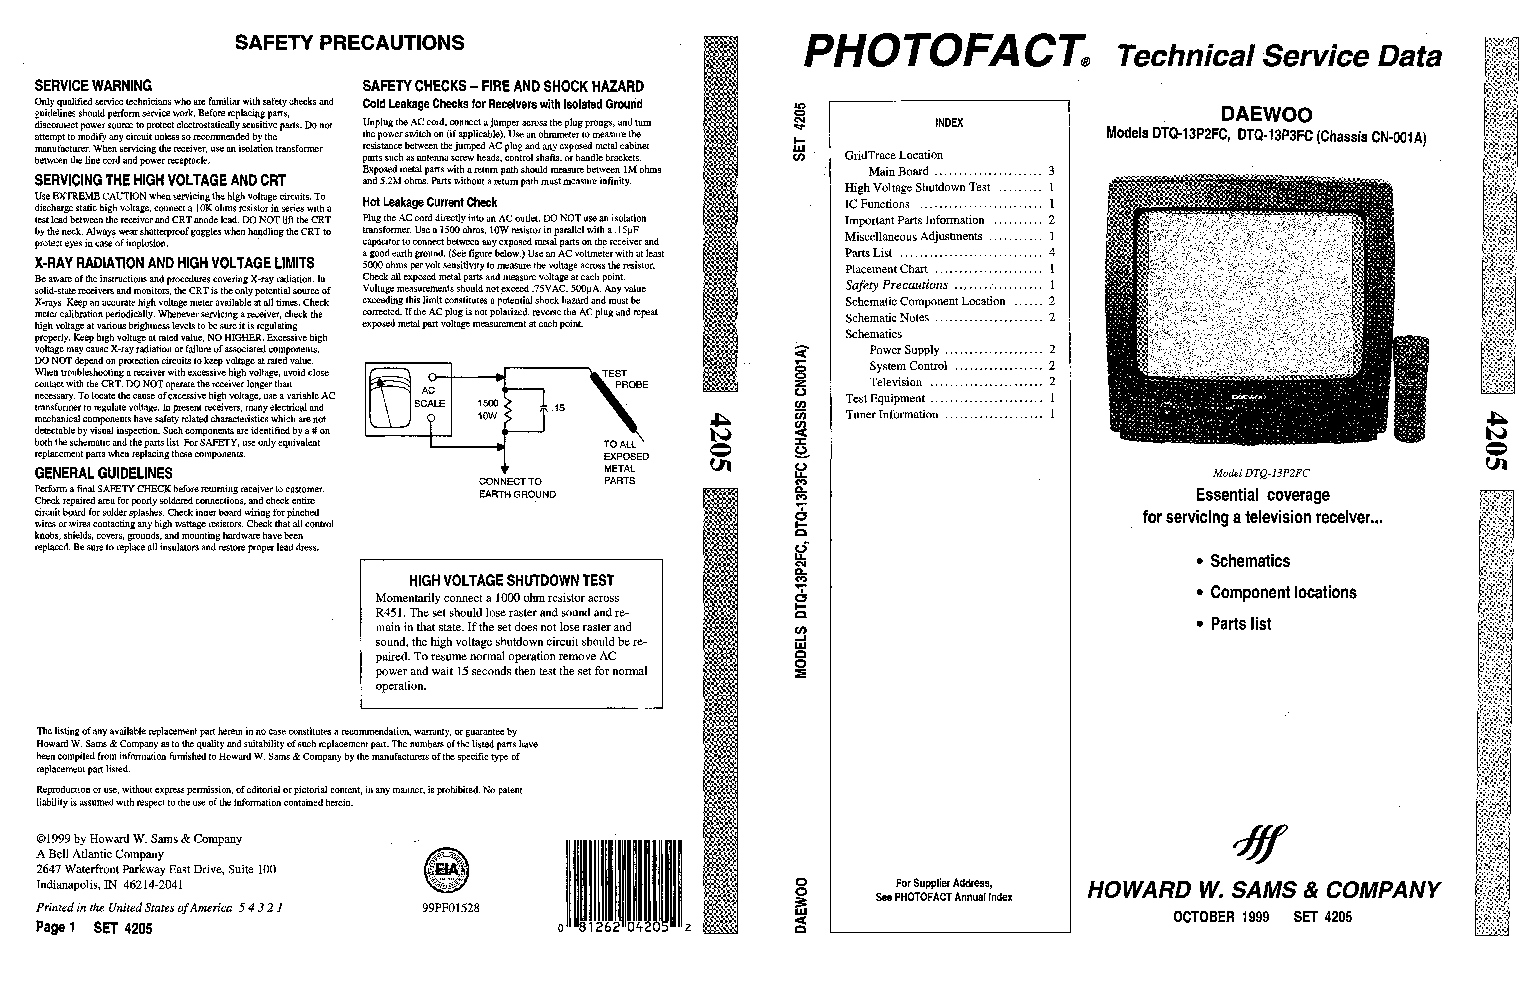 DAEWOO TV DMQ2072 DIAGRAM PDF